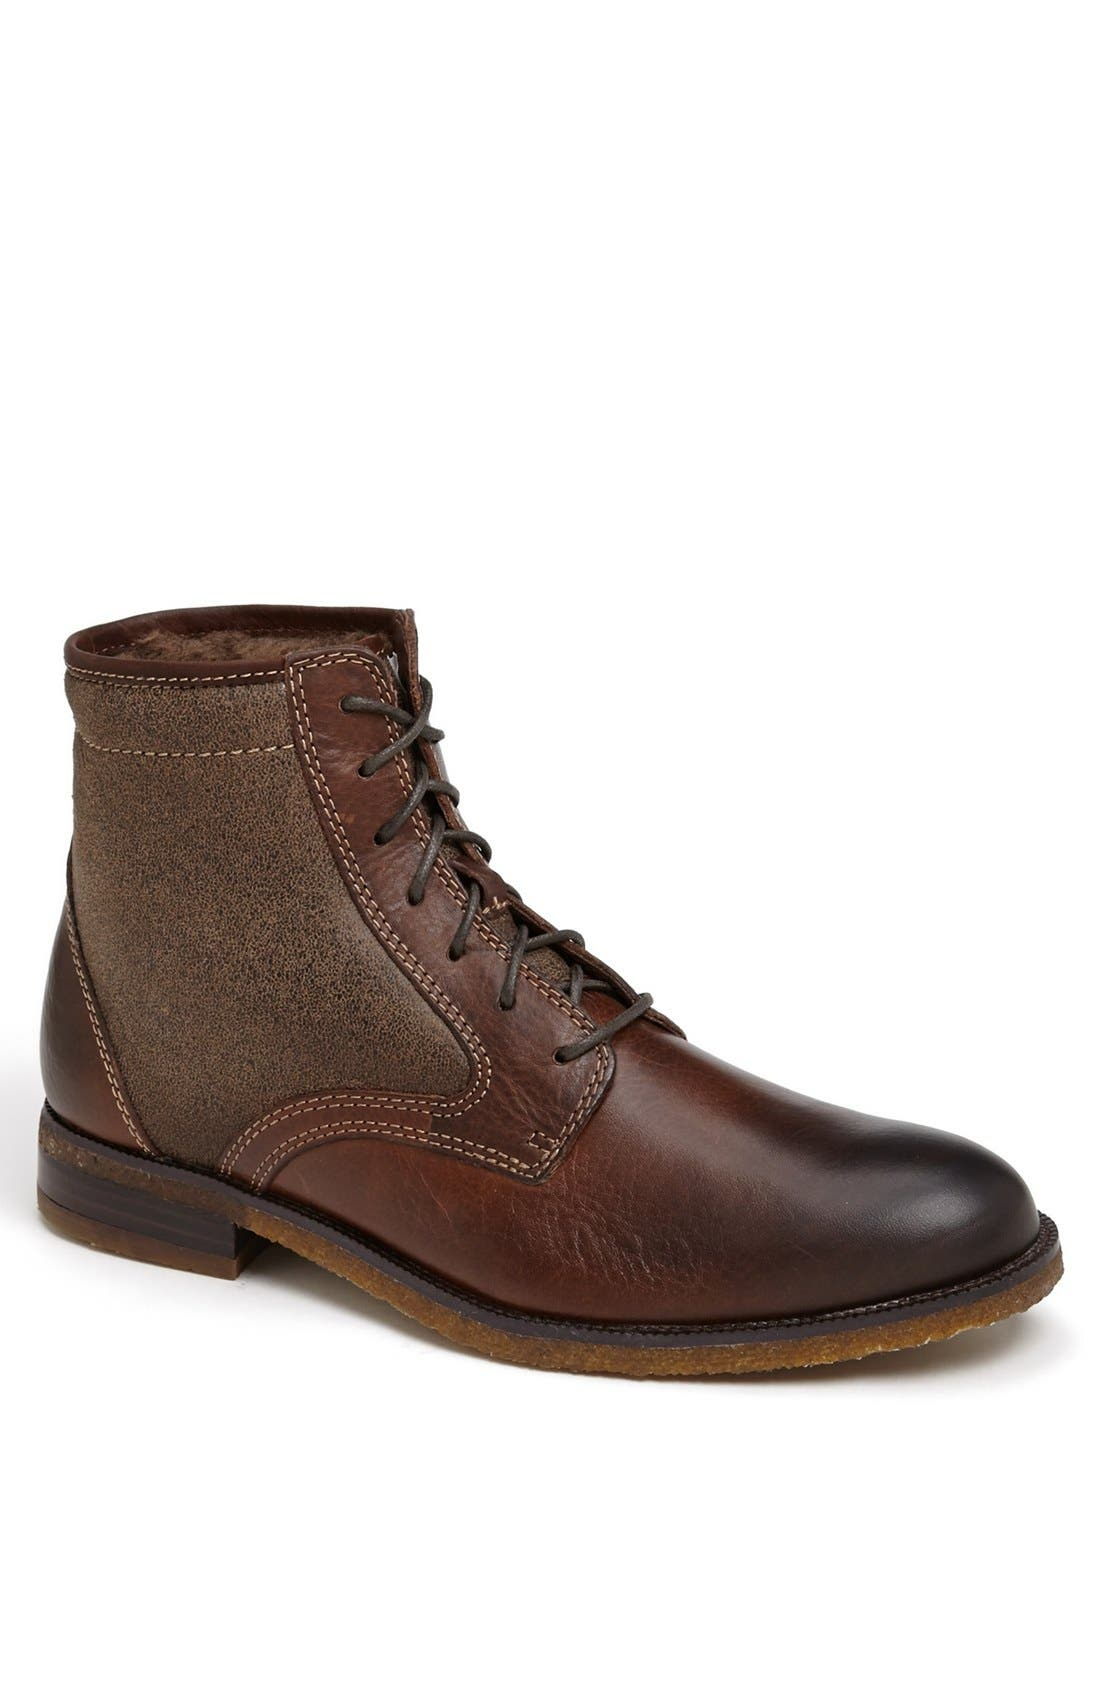 Alternate Image 1 Selected - J&M 1850 'Burchfield' Boot (Online Only)